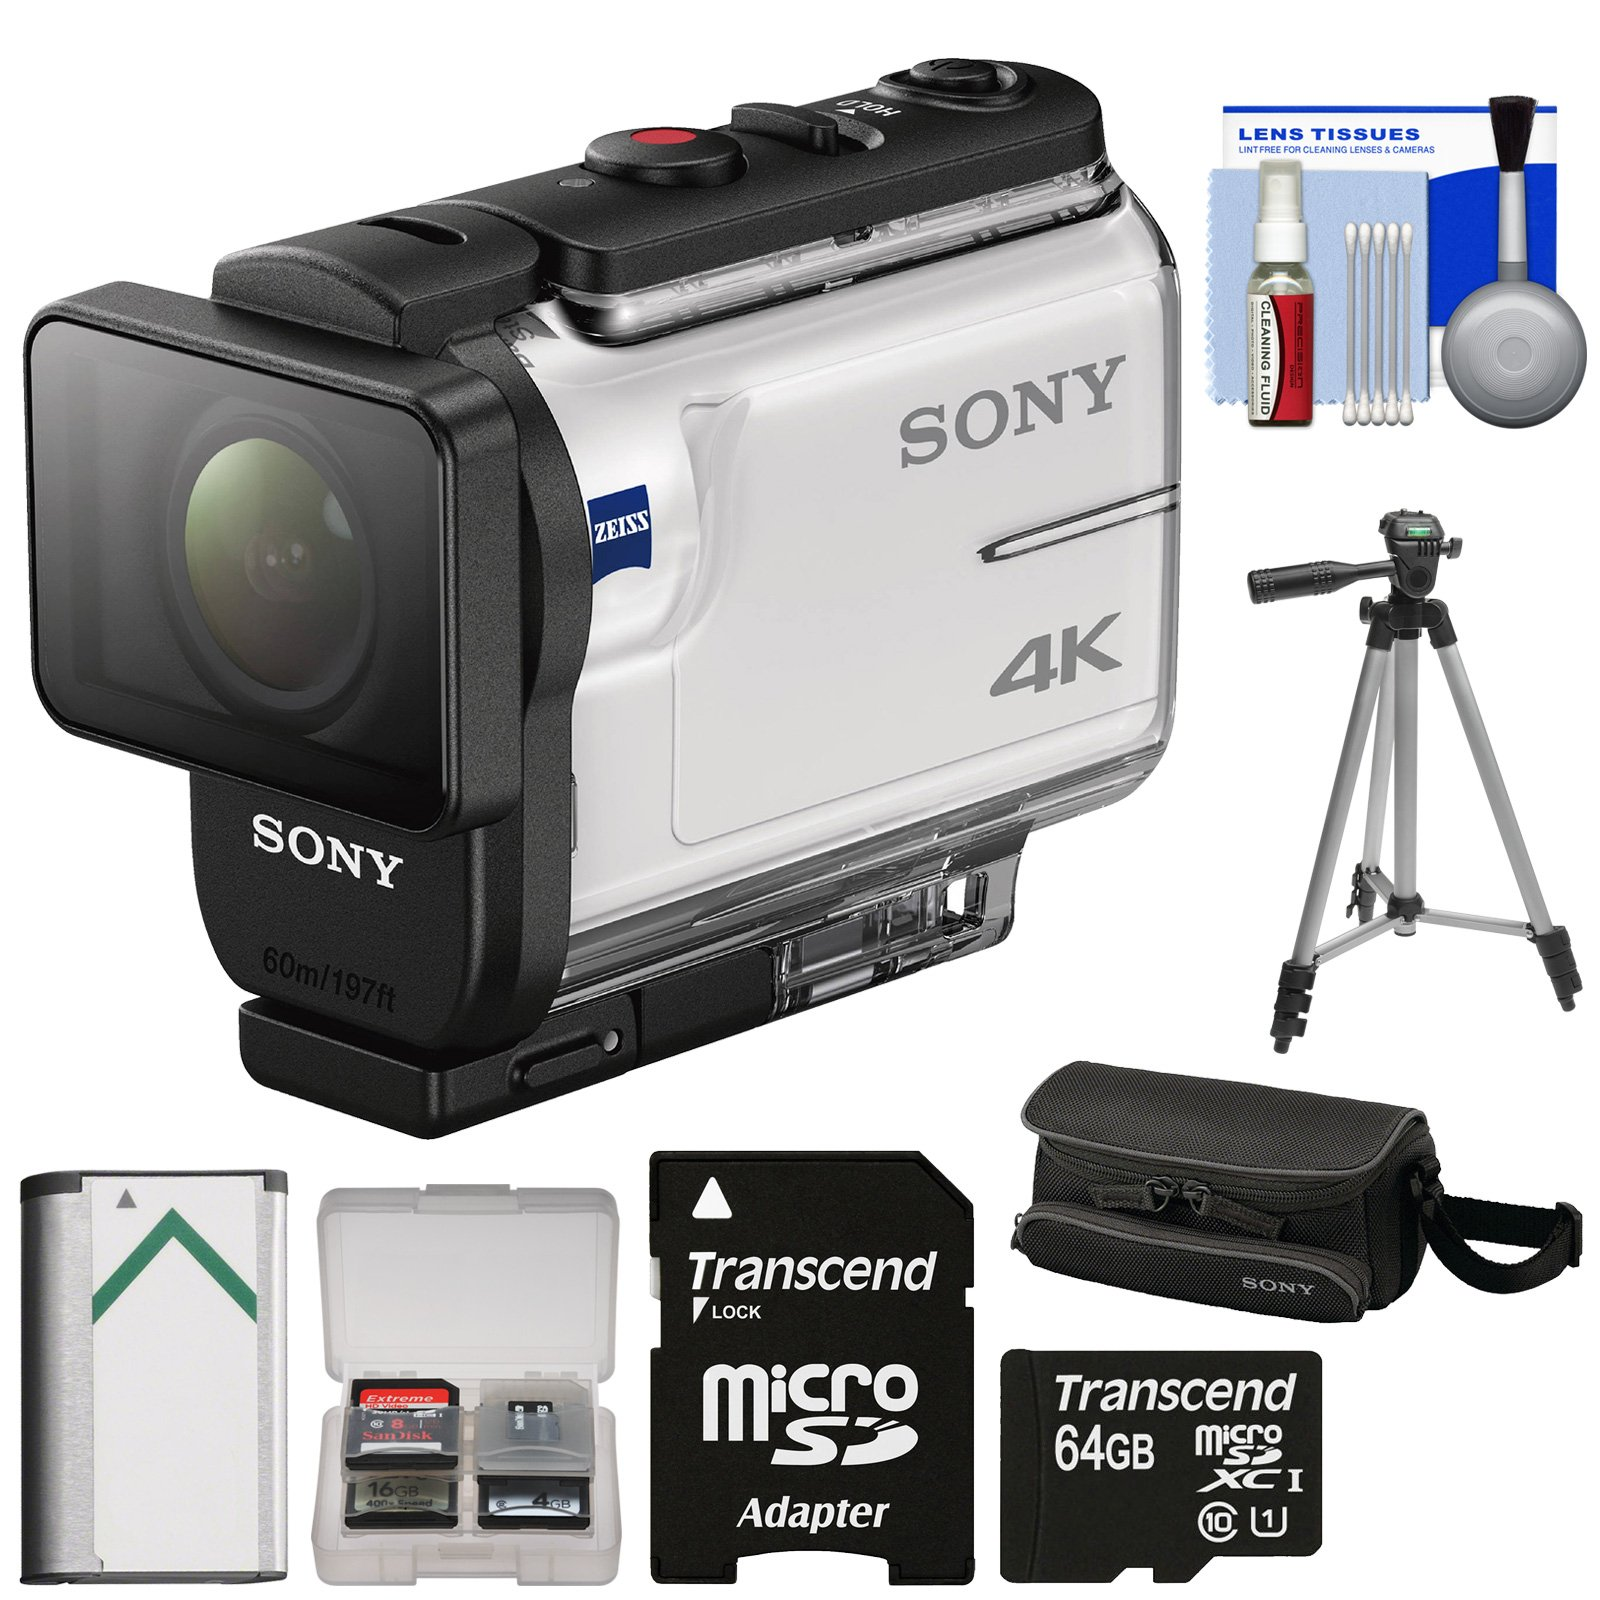 Sony Action Cam FDR-X3000 Wi-Fi GPS 4K HD Video Camera Camcorder with 64GB Card + Battery + Case + Tripod + Kit by Sony